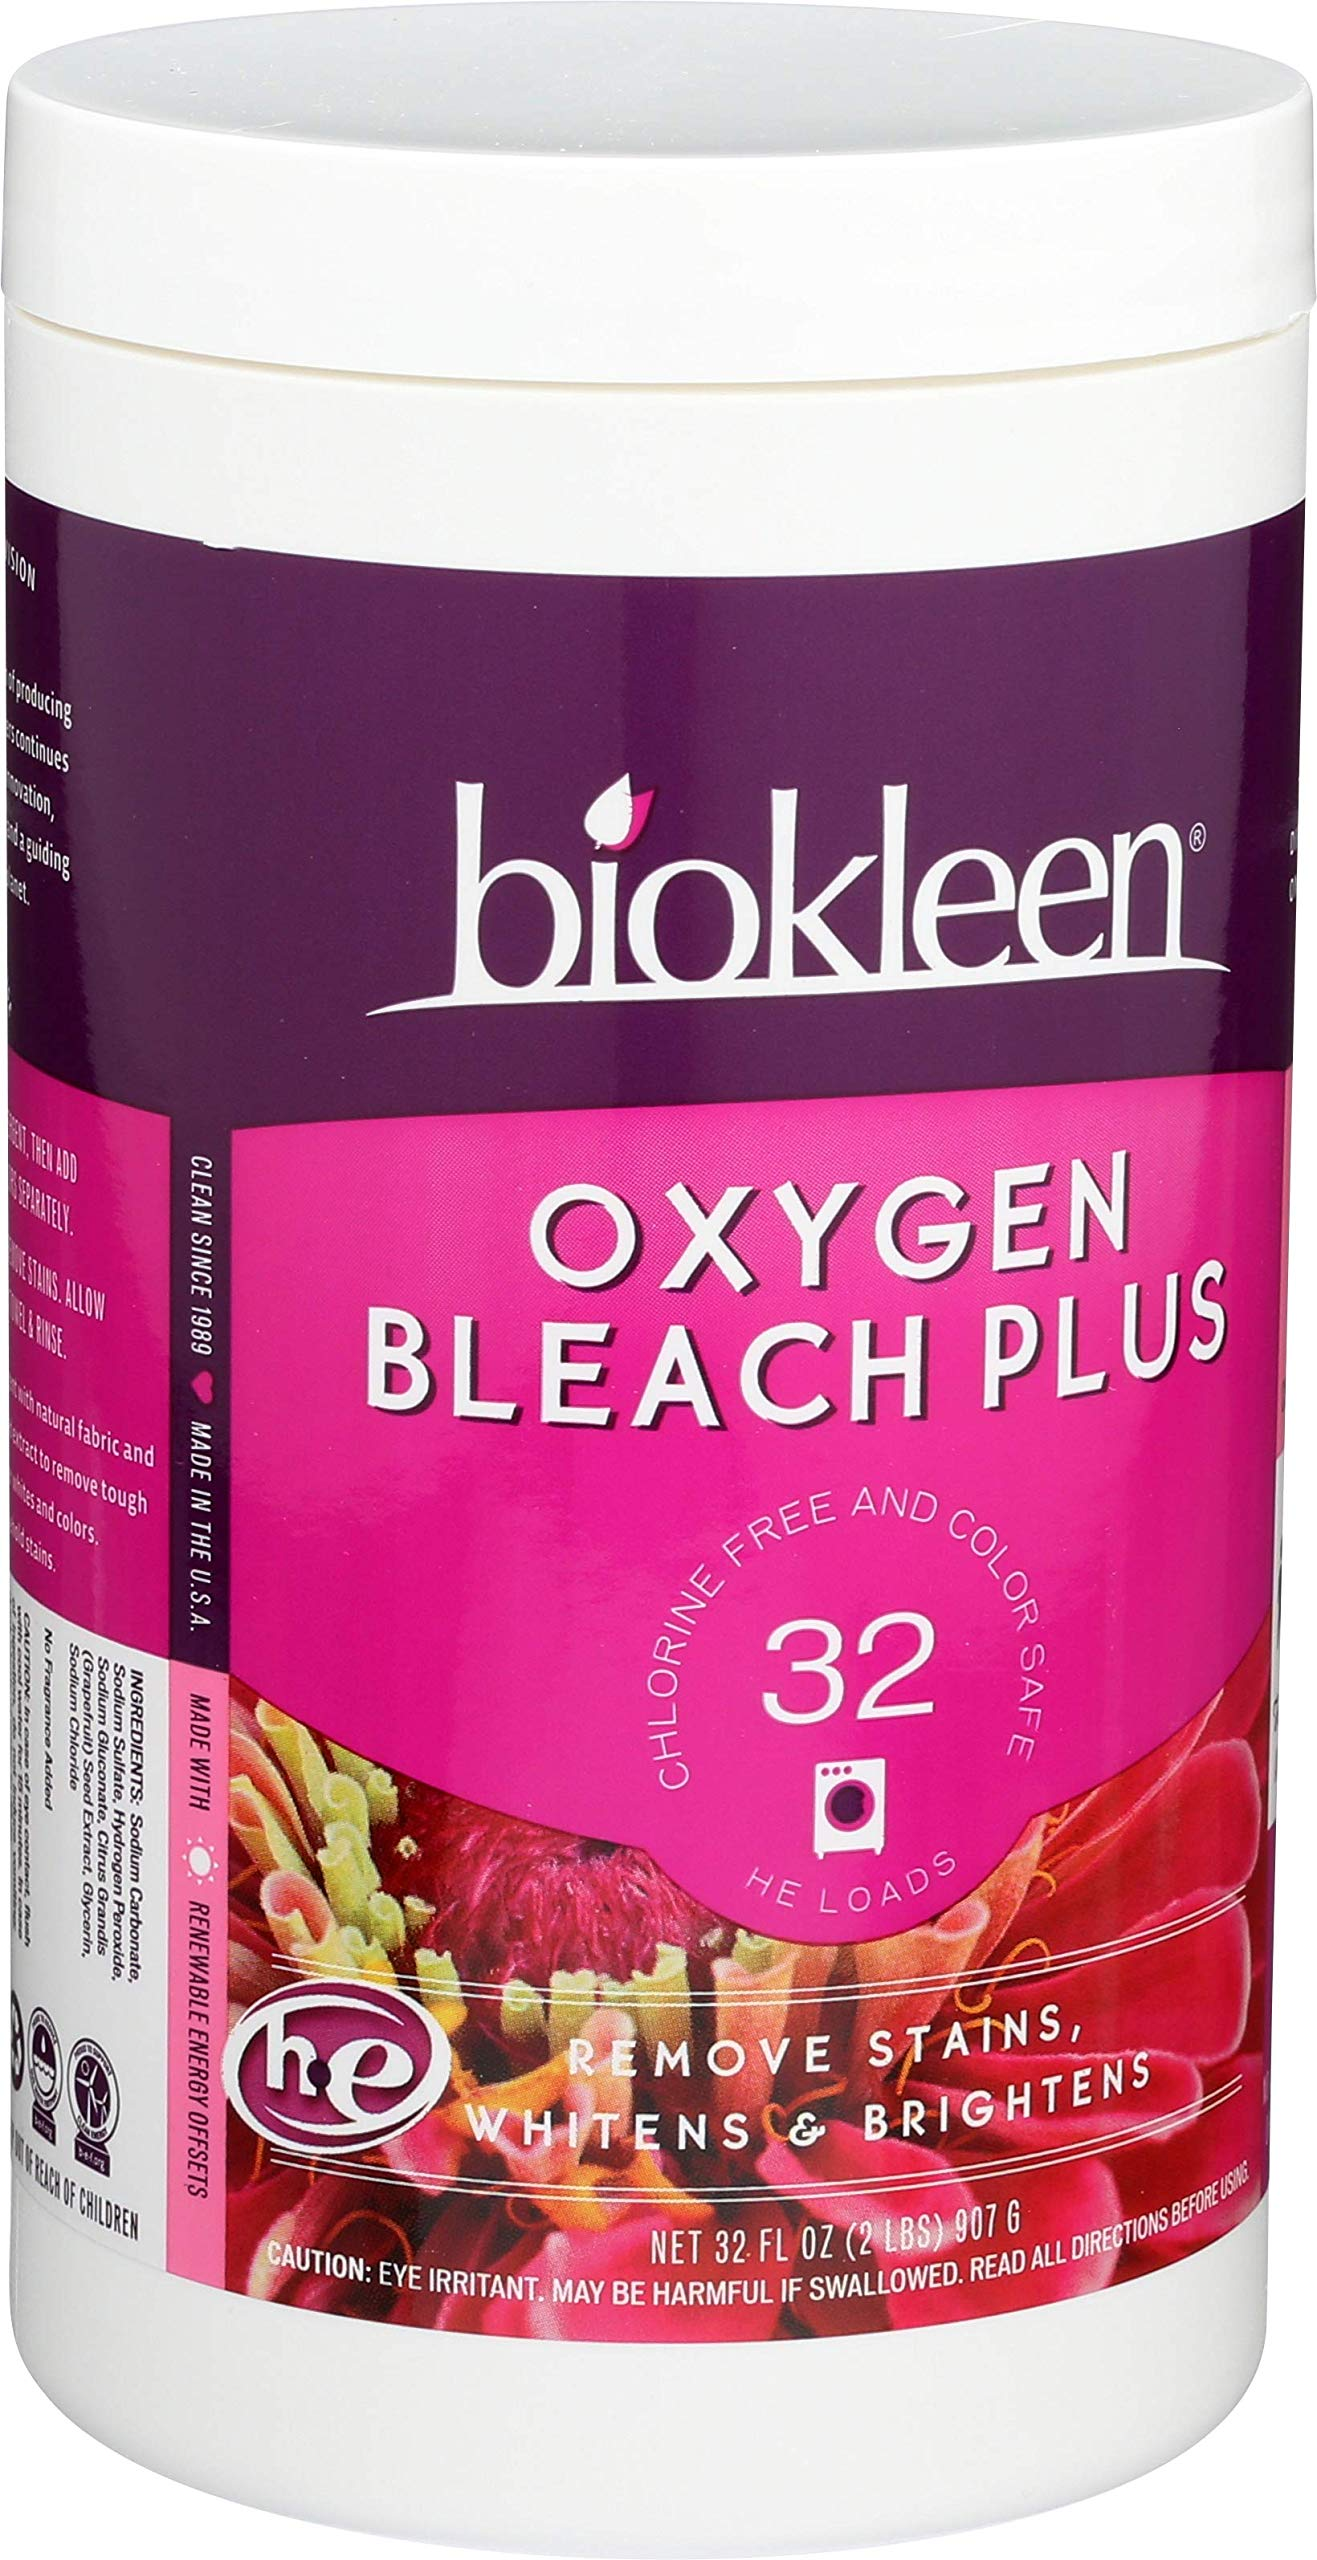 Biokleen Laundry Oxygen Bleach Plus, Concentrated Stain Remover, Whitens & Brightens, Eco-Friendly, Non-Toxic, Plant-Based, No Artificial Fragrance or Preservatives, 2 Pounds, 32 HE Loads (Pack of 12) by Biokleen (Image #2)